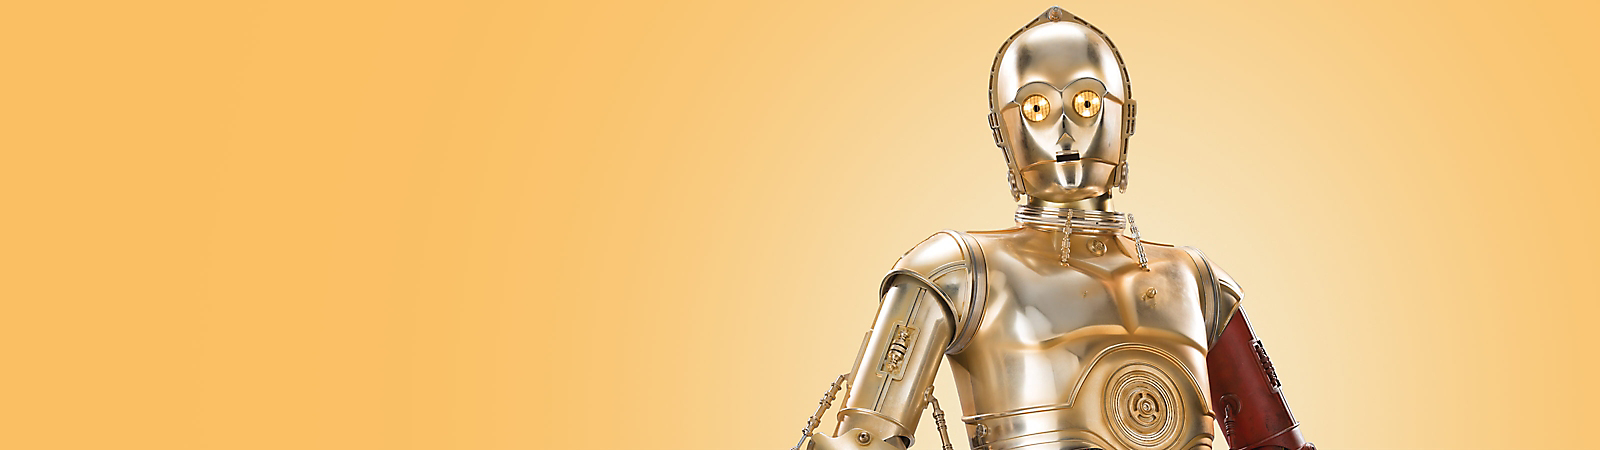 Background image of C-3PO